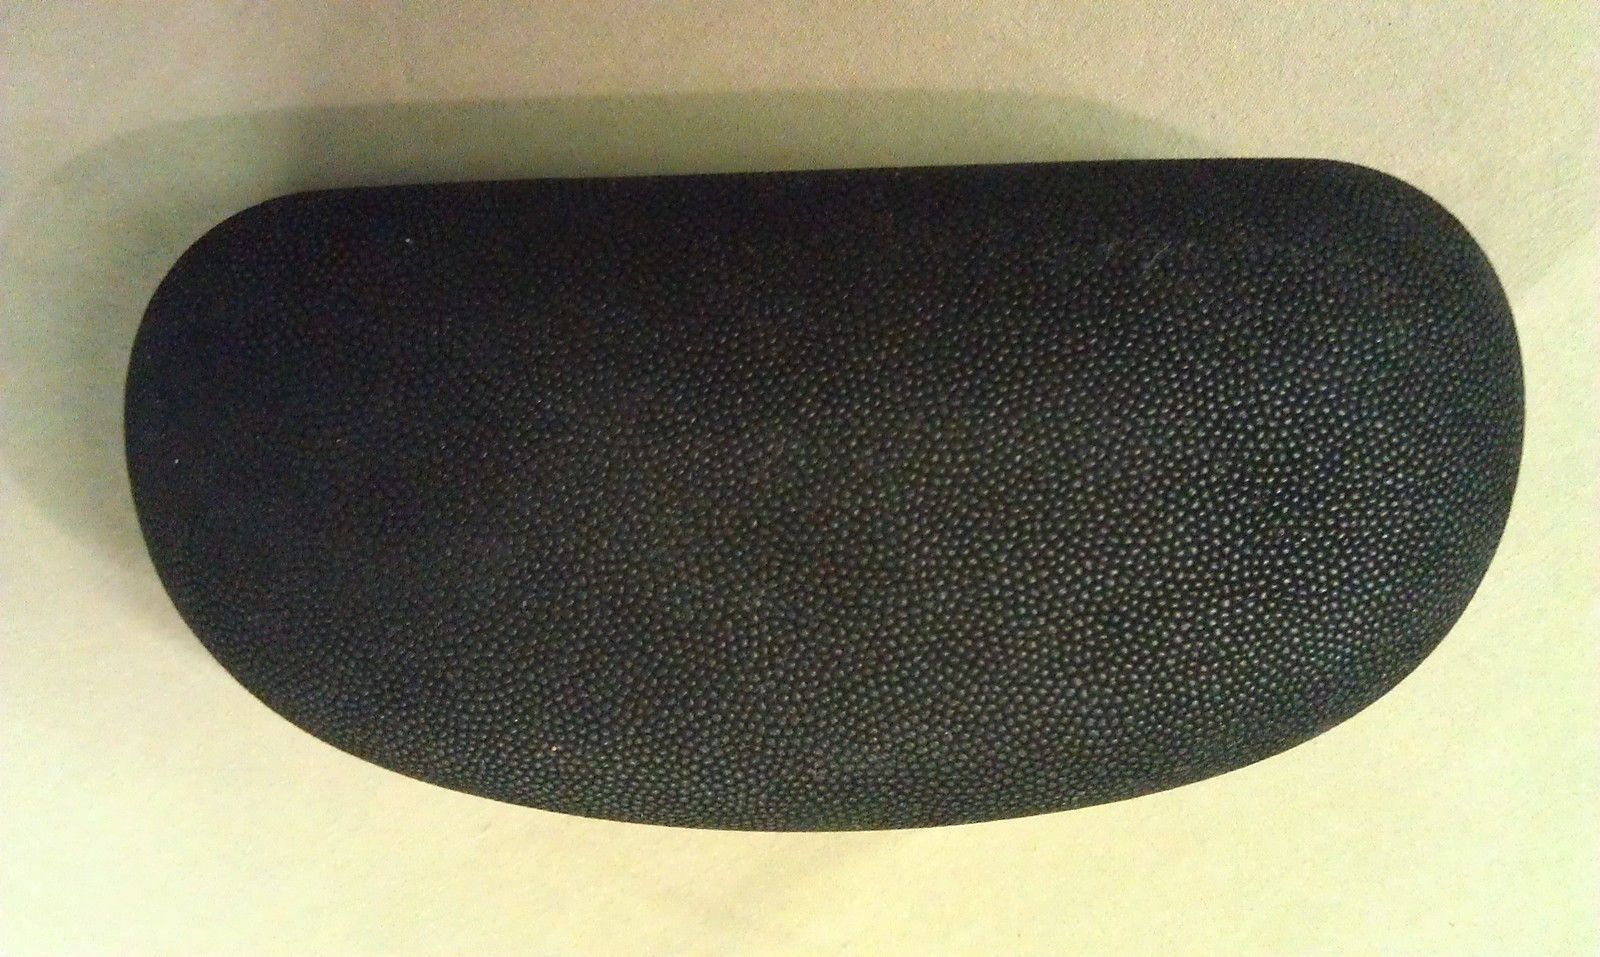 8P28  SEE Italy Over Sized/Large Black Suede? Eyeglass Case  EXC COND !!